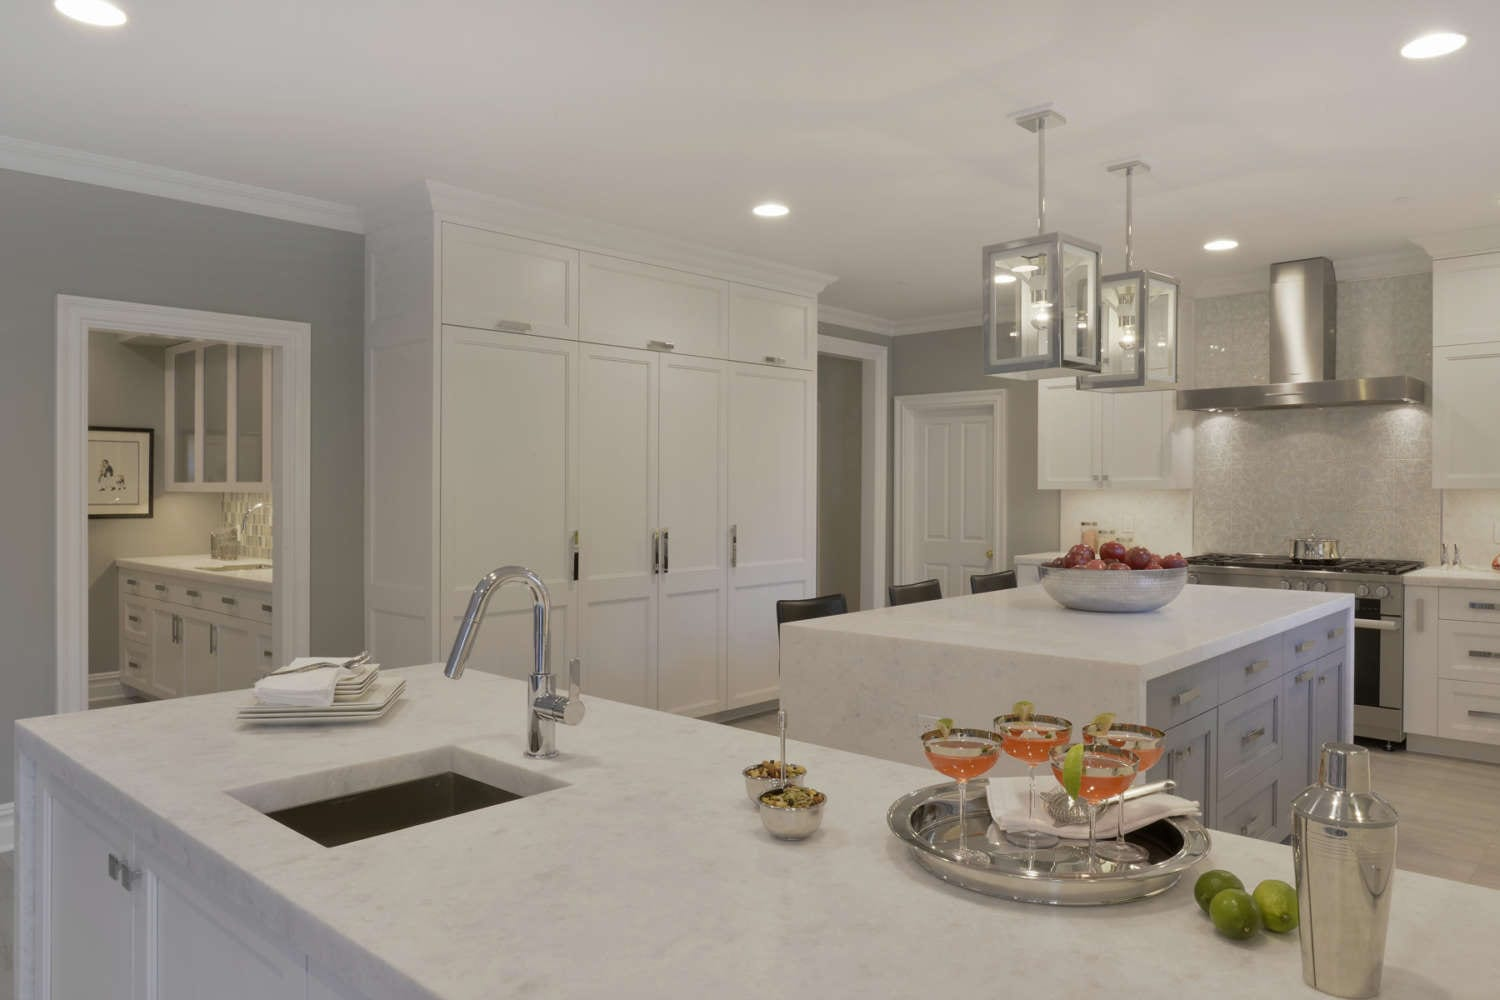 The island of this all white kitchen features a marble waterfall countertop and seating, and is lit by silver pendant lights. The kitchen design by Danielle Florie of Bilotta Kitchens features fully custom frameless shaker style double tiered white painted Bilotta Cabinetry with open corner shelves and polished stainless accents.